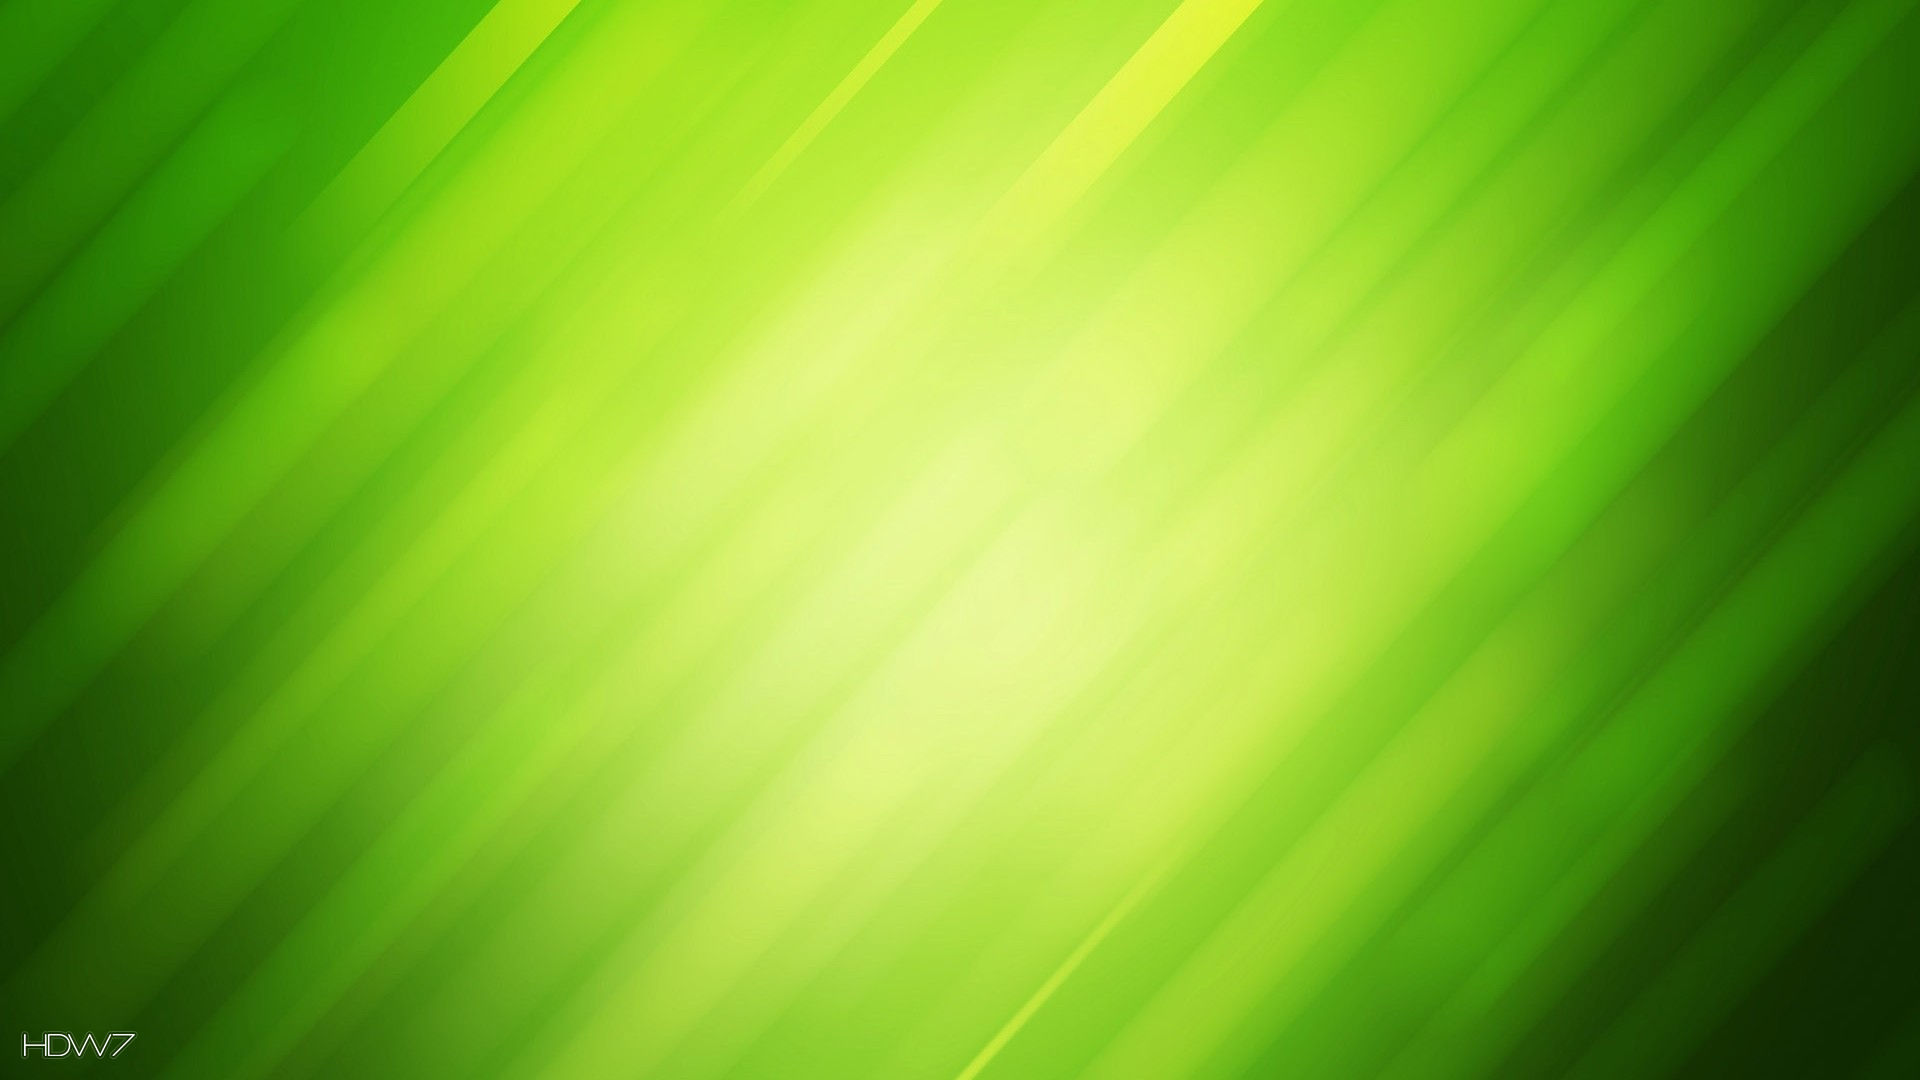 HD Green Wallpapers 1080p